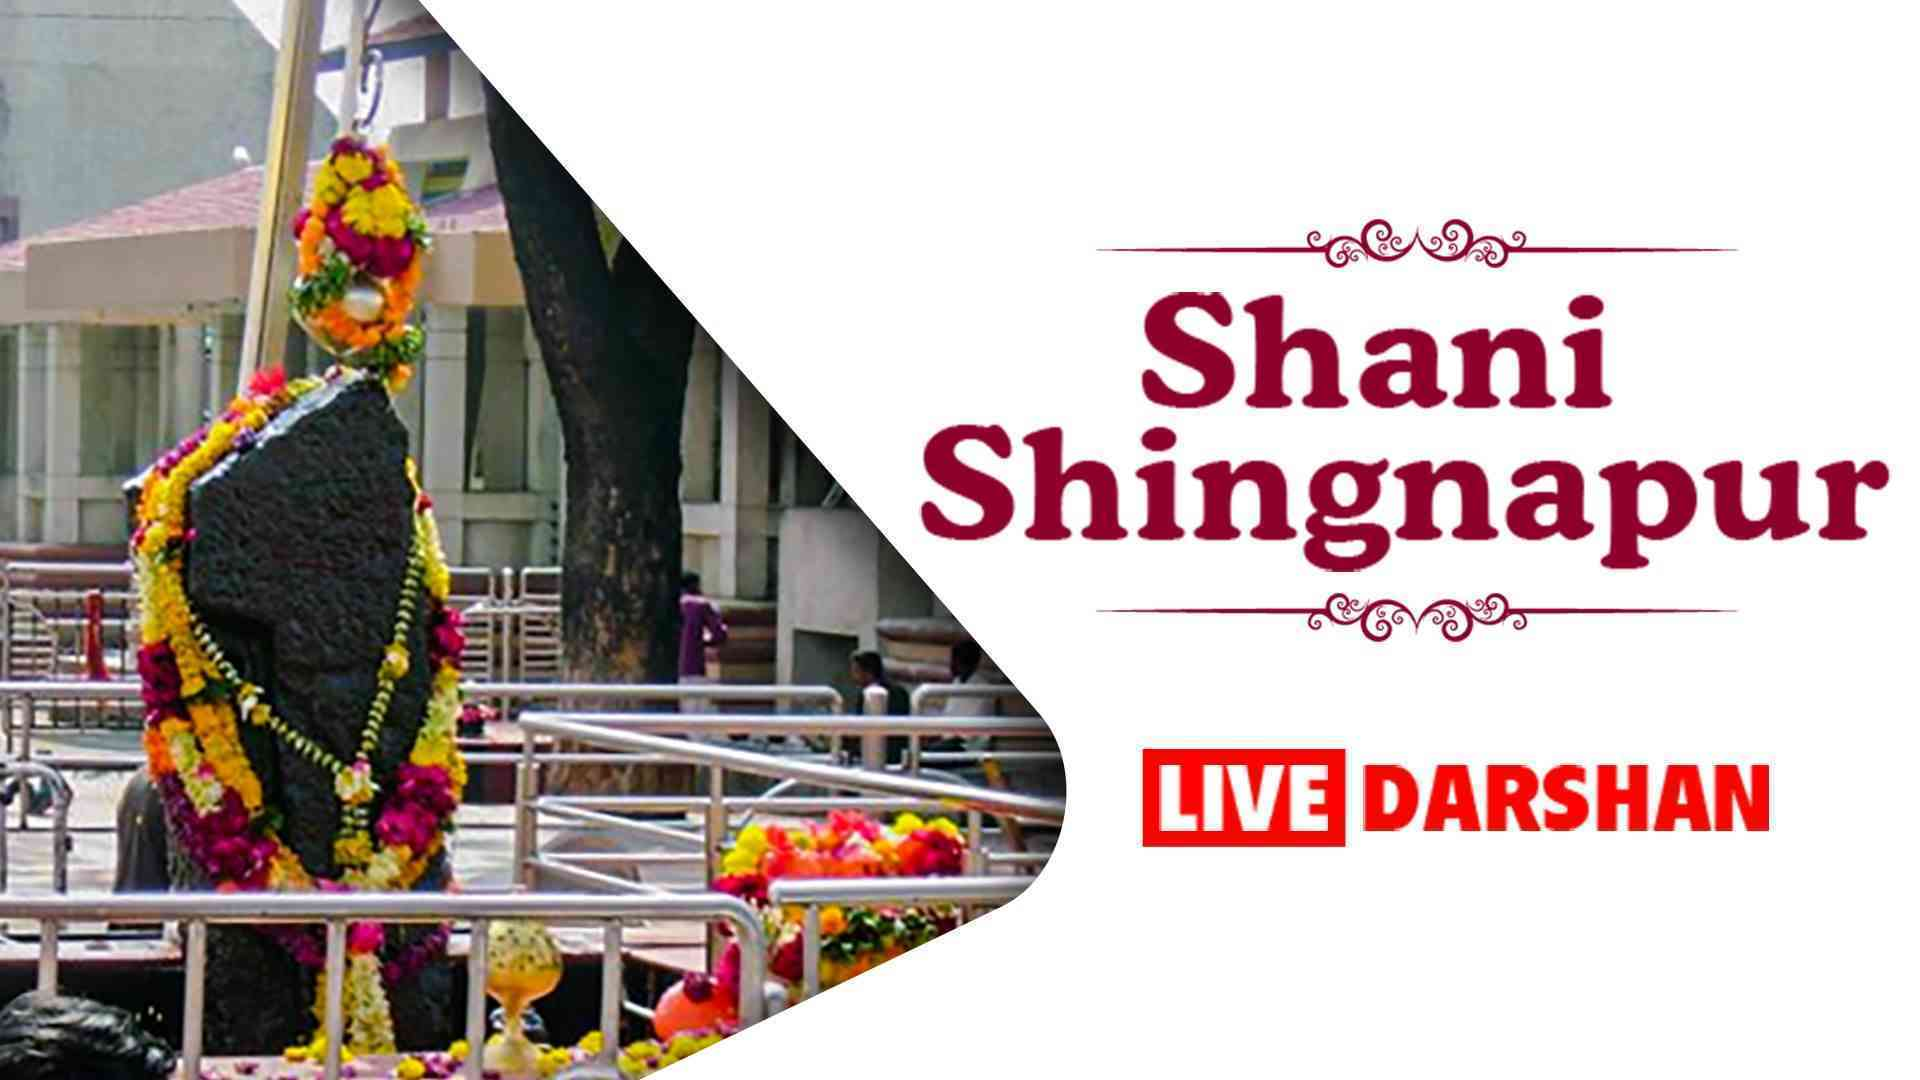 Shree Shani Shingnapur Live Darshan